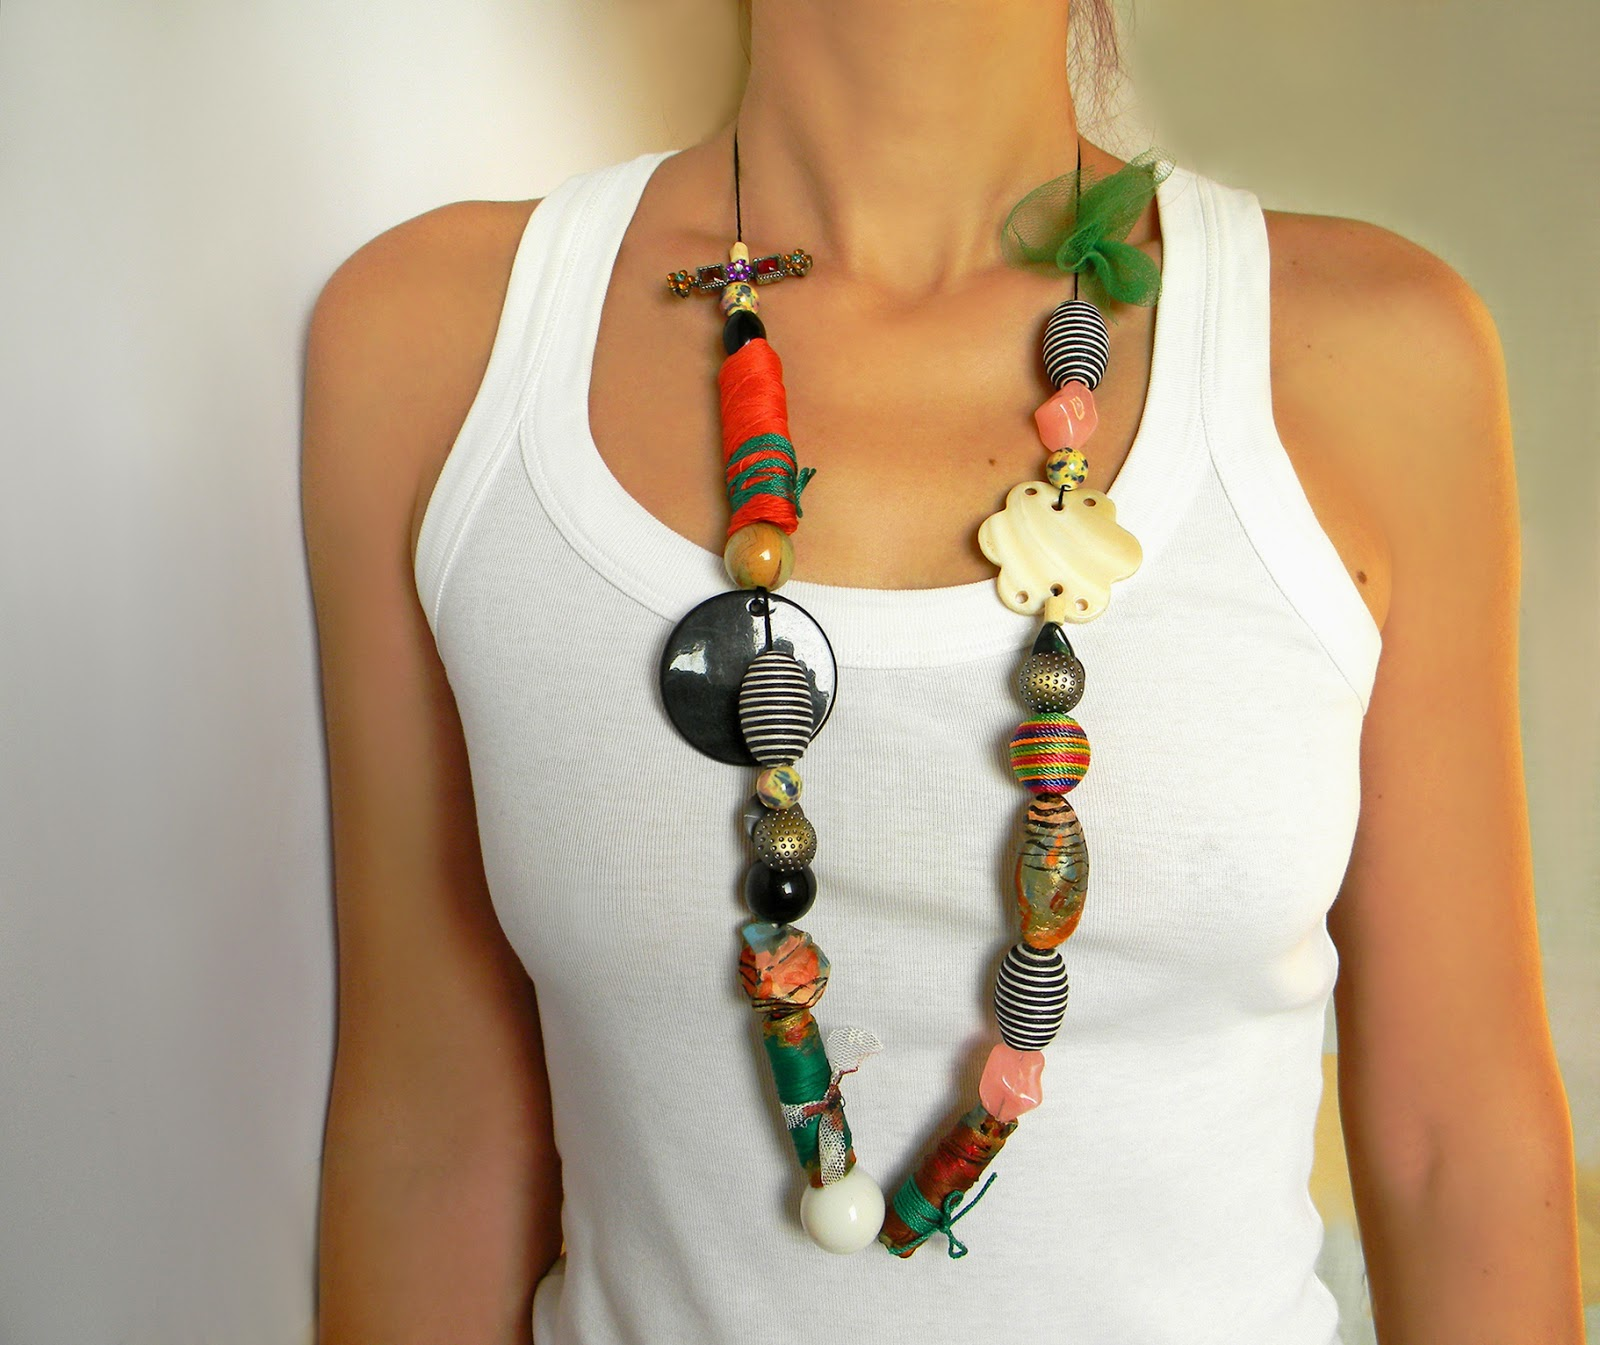 Oversized Statement Necklace with Large Beads and Textile Collages